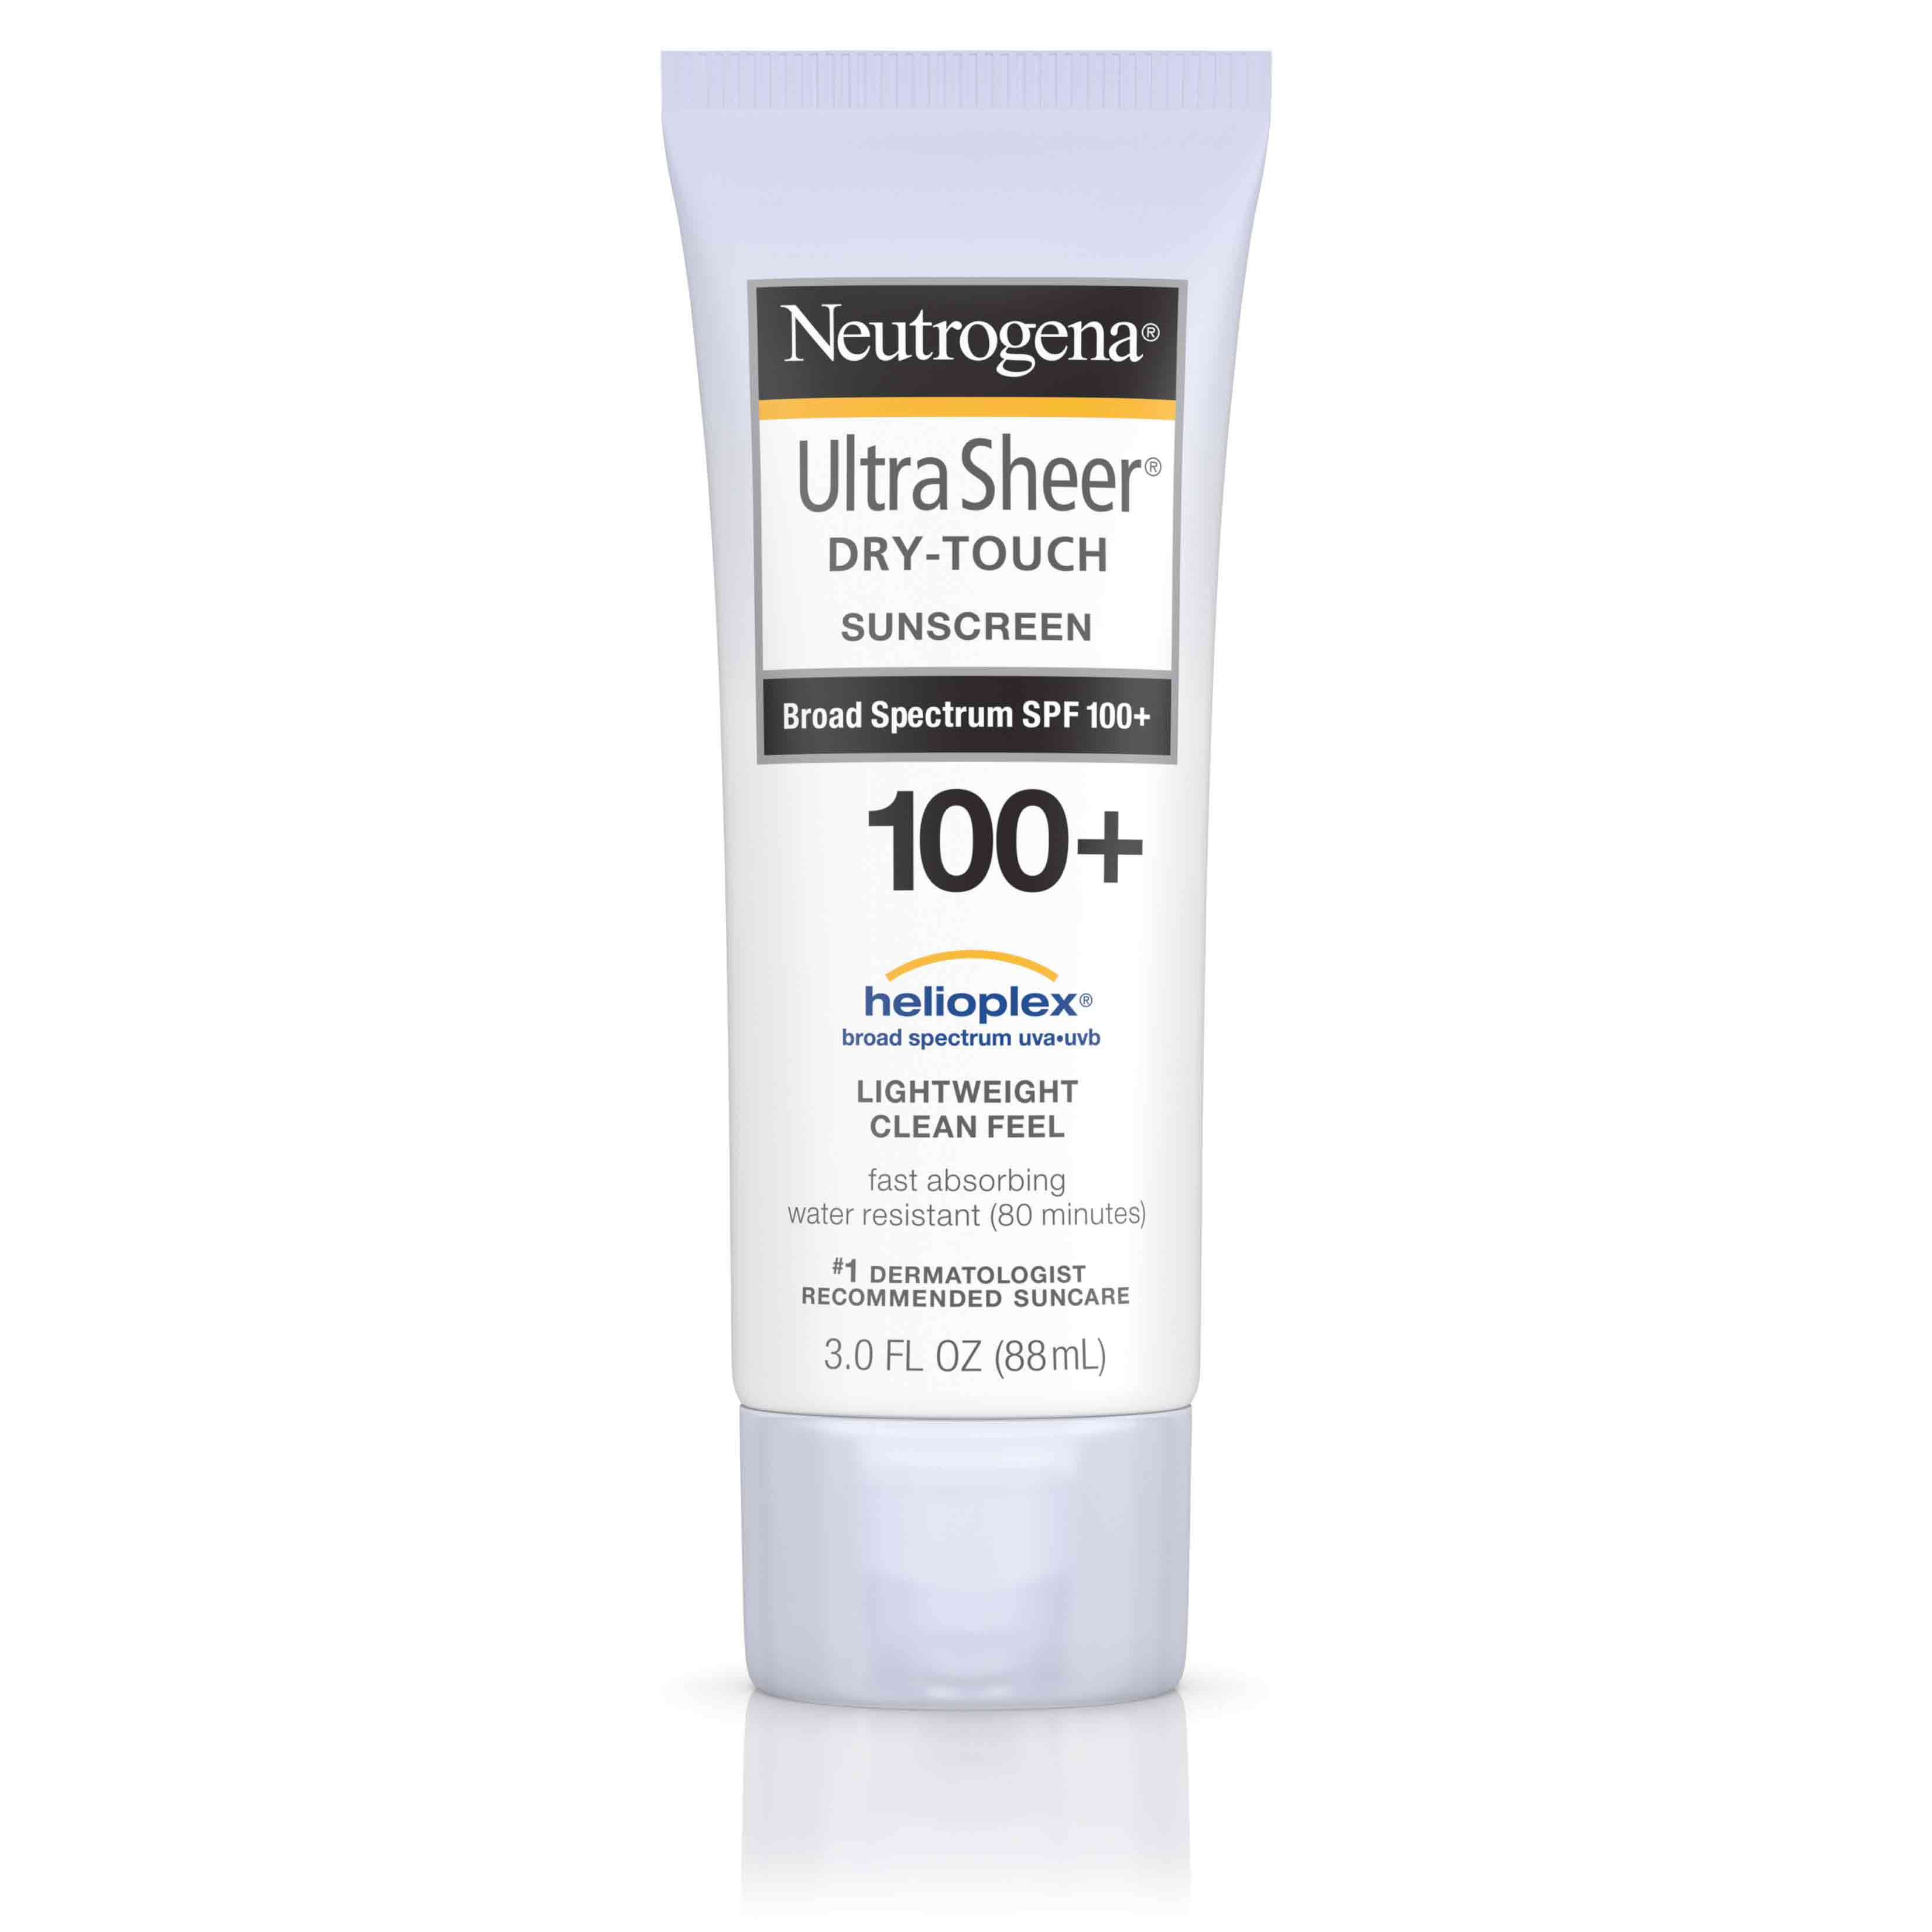 Ultra Sheer® Dry-Touch Sunscreen Broad Spectrum SPF 100+